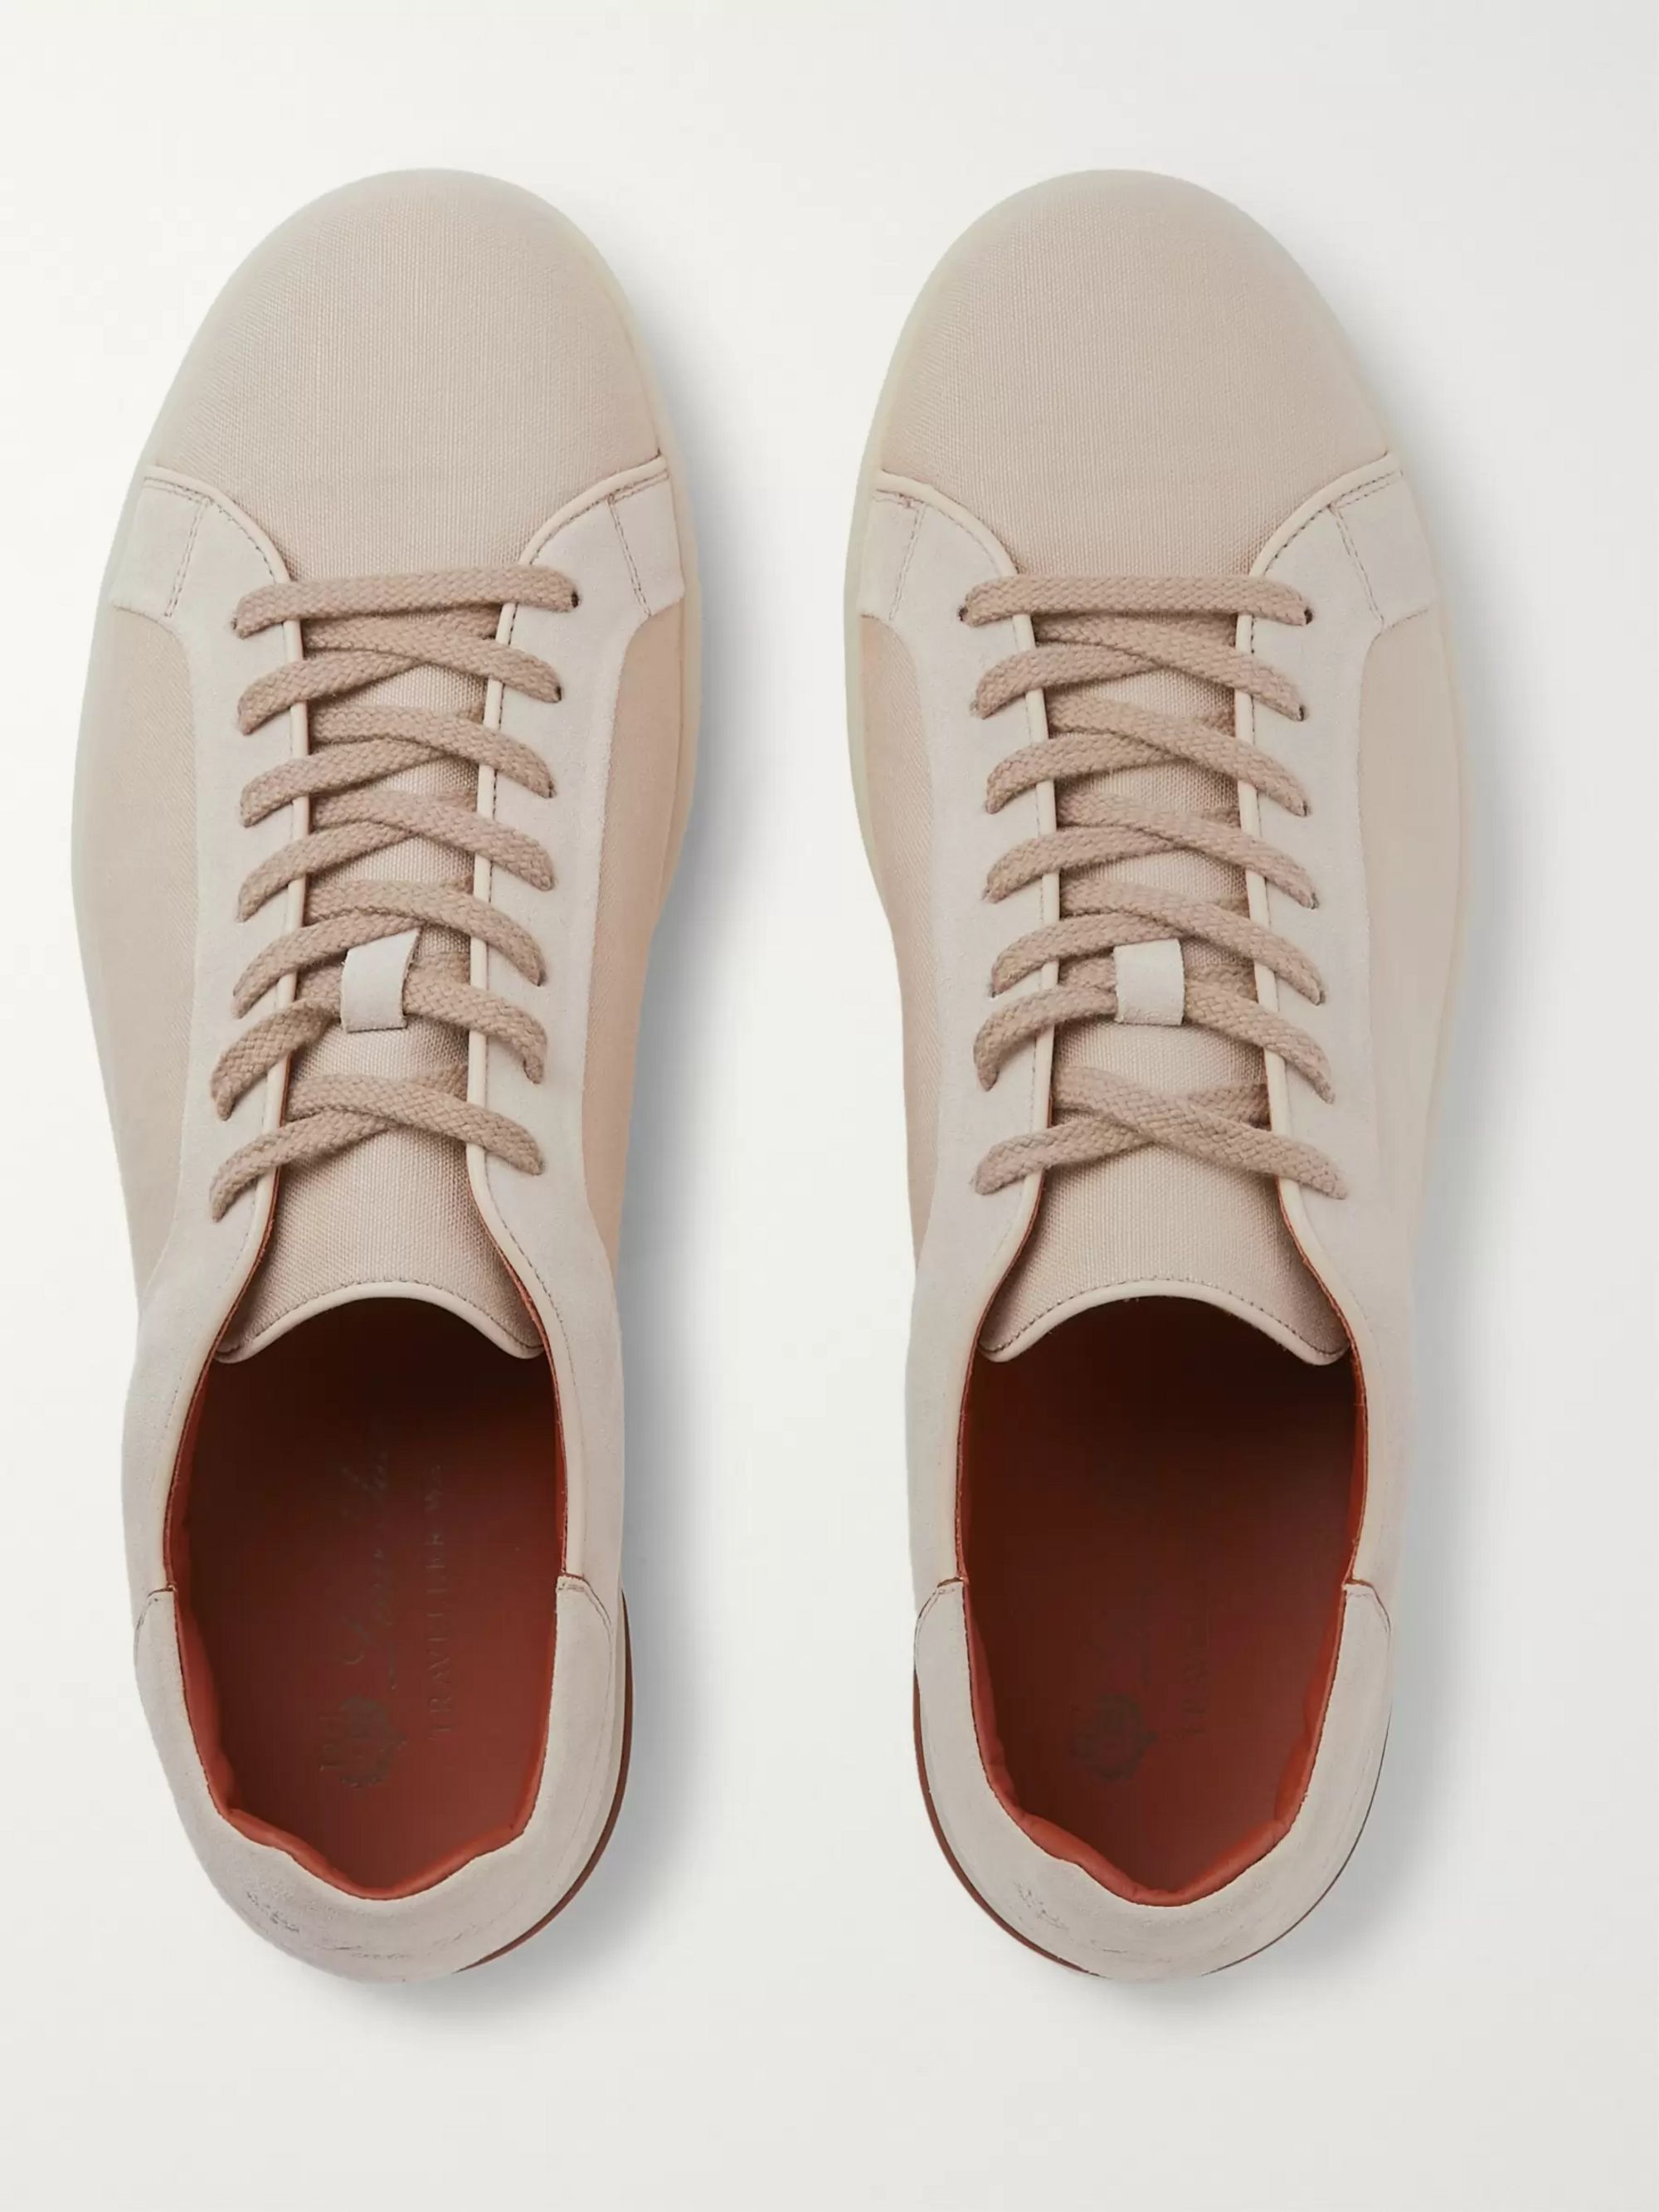 LORO PIANA Traveller Suede and Canvas Sneakers